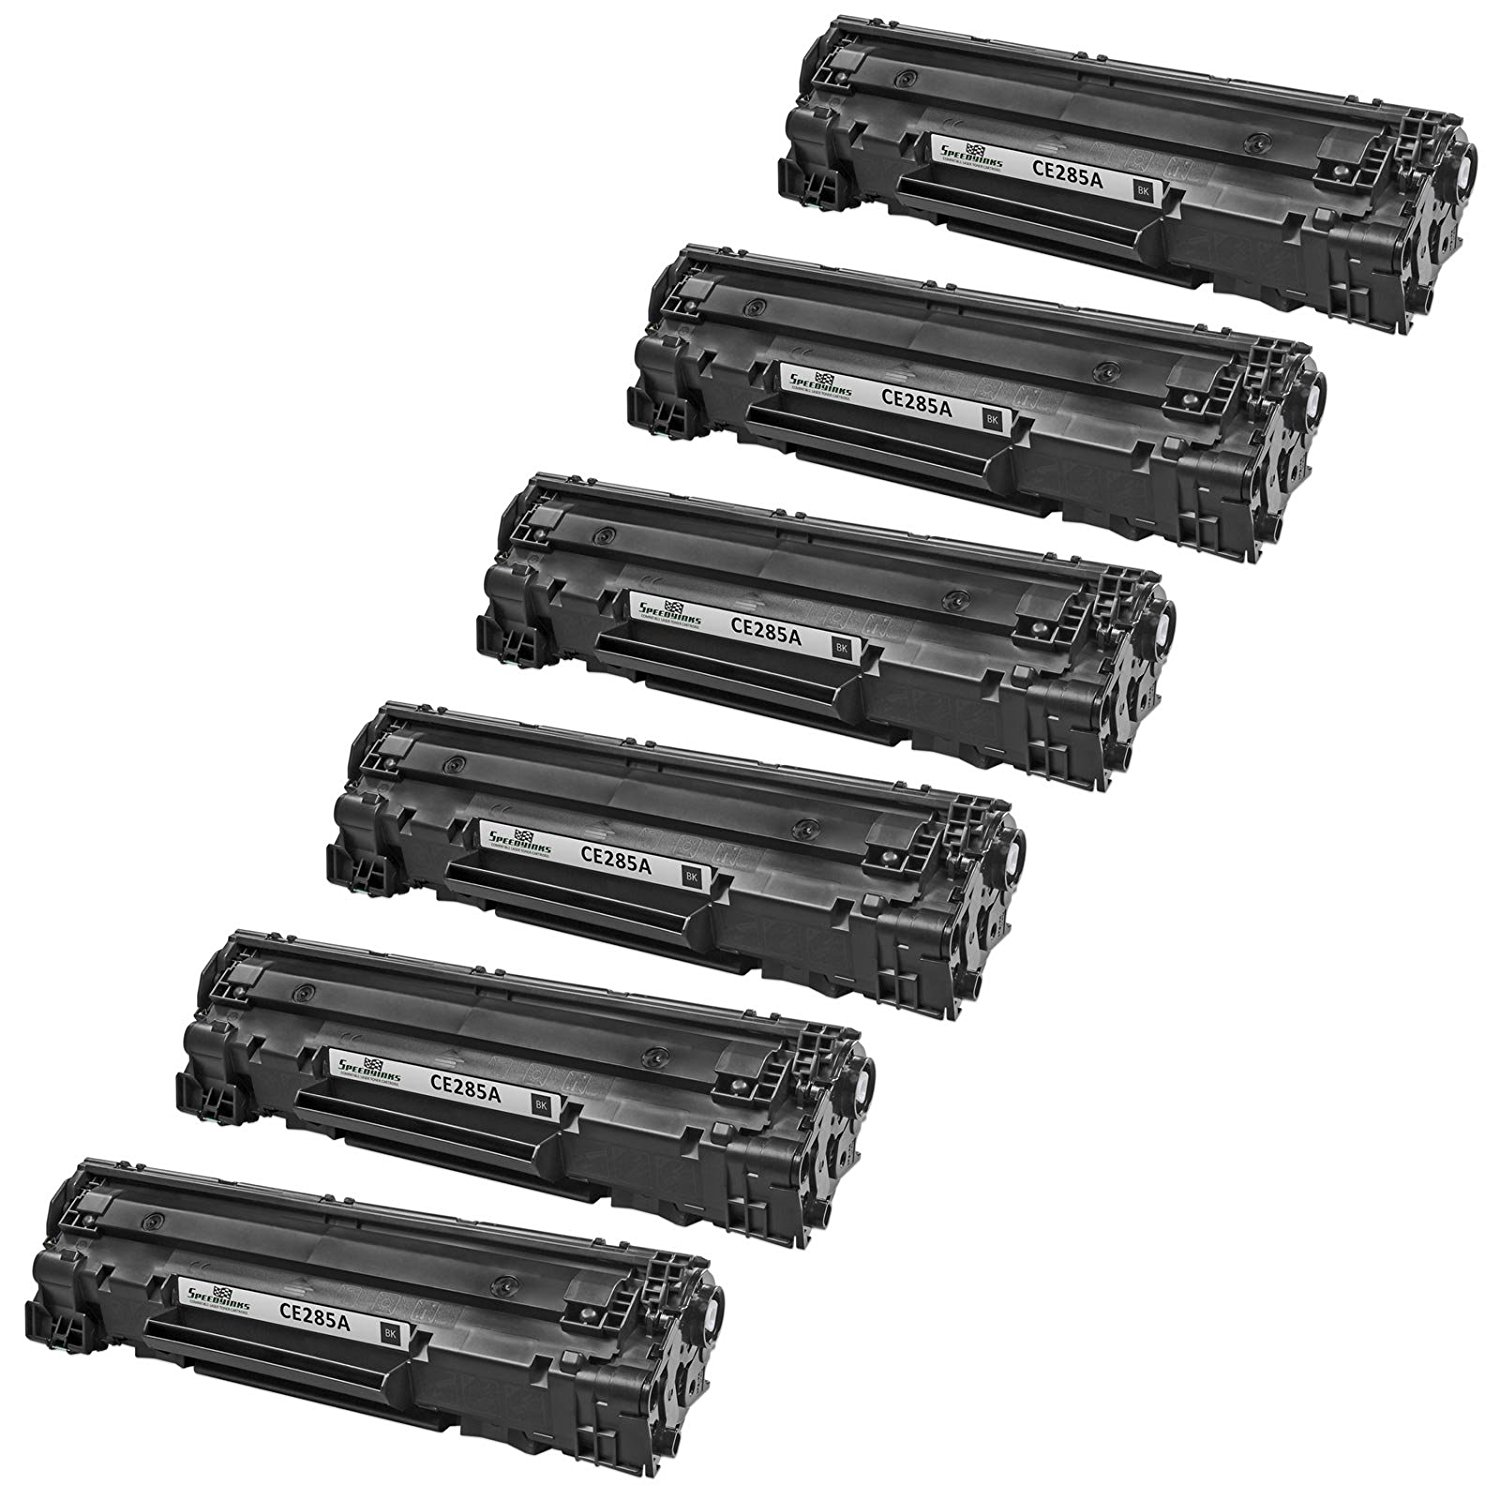 Cheap Laserjet P1102w Cartridge Find Opc Drum Printer Hp P1102 Toner Katrid Ce285a 85a Get Quotations Speedy Inks 6 Pack Remanufactured Replacement For Black Laser